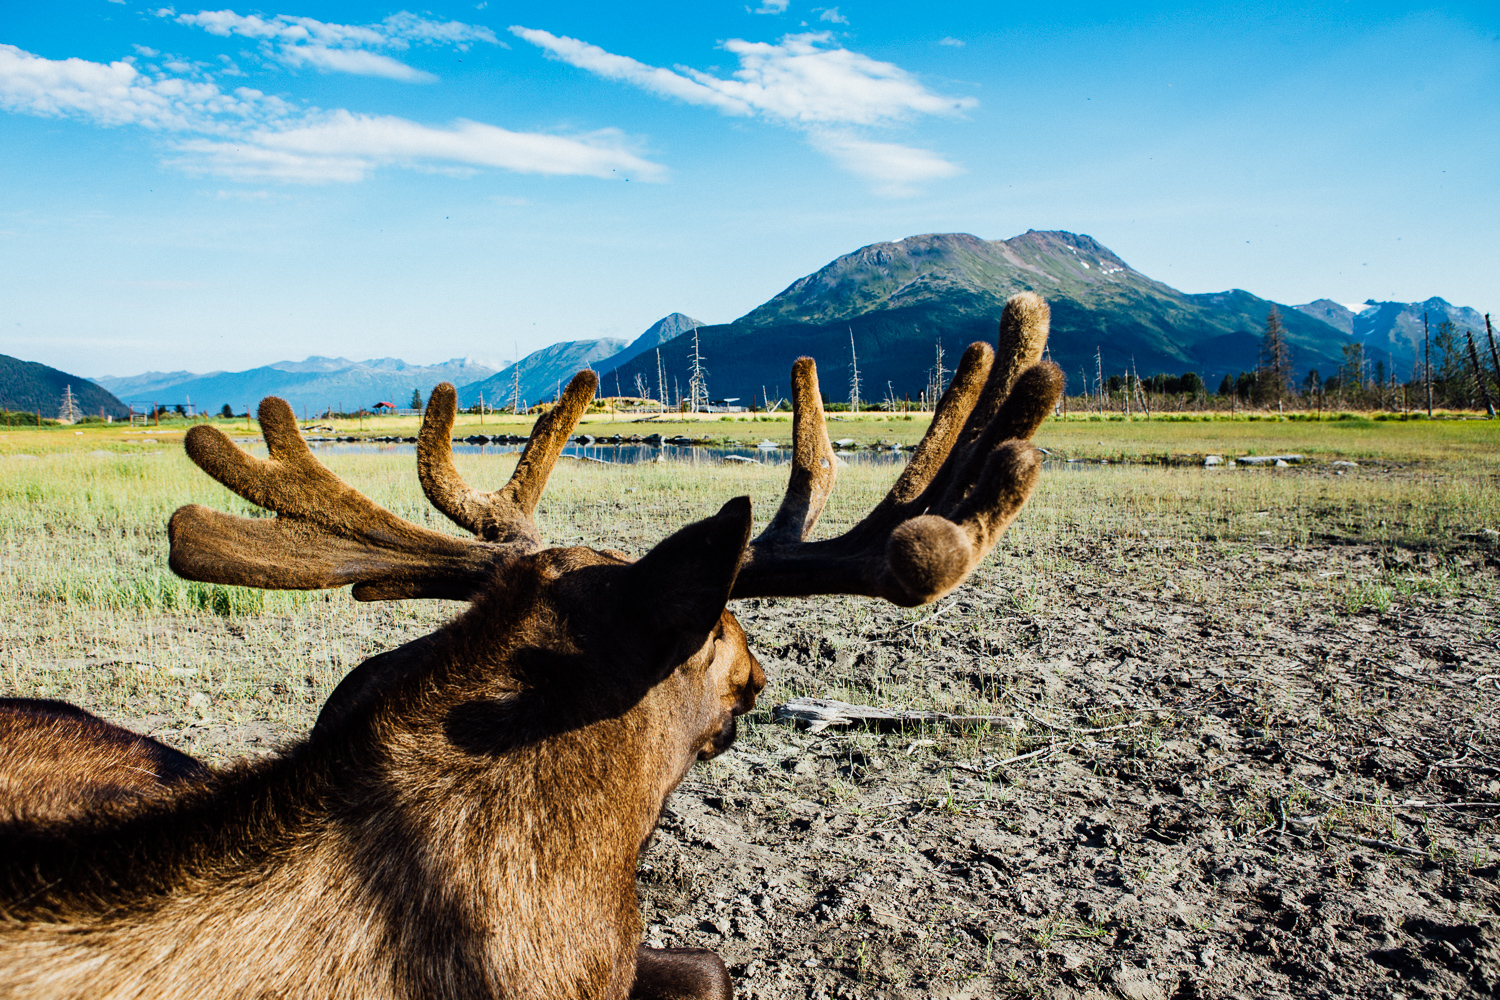 They don't joke around about wildlife in Alaska. I was really close to this moose. (DSLR)